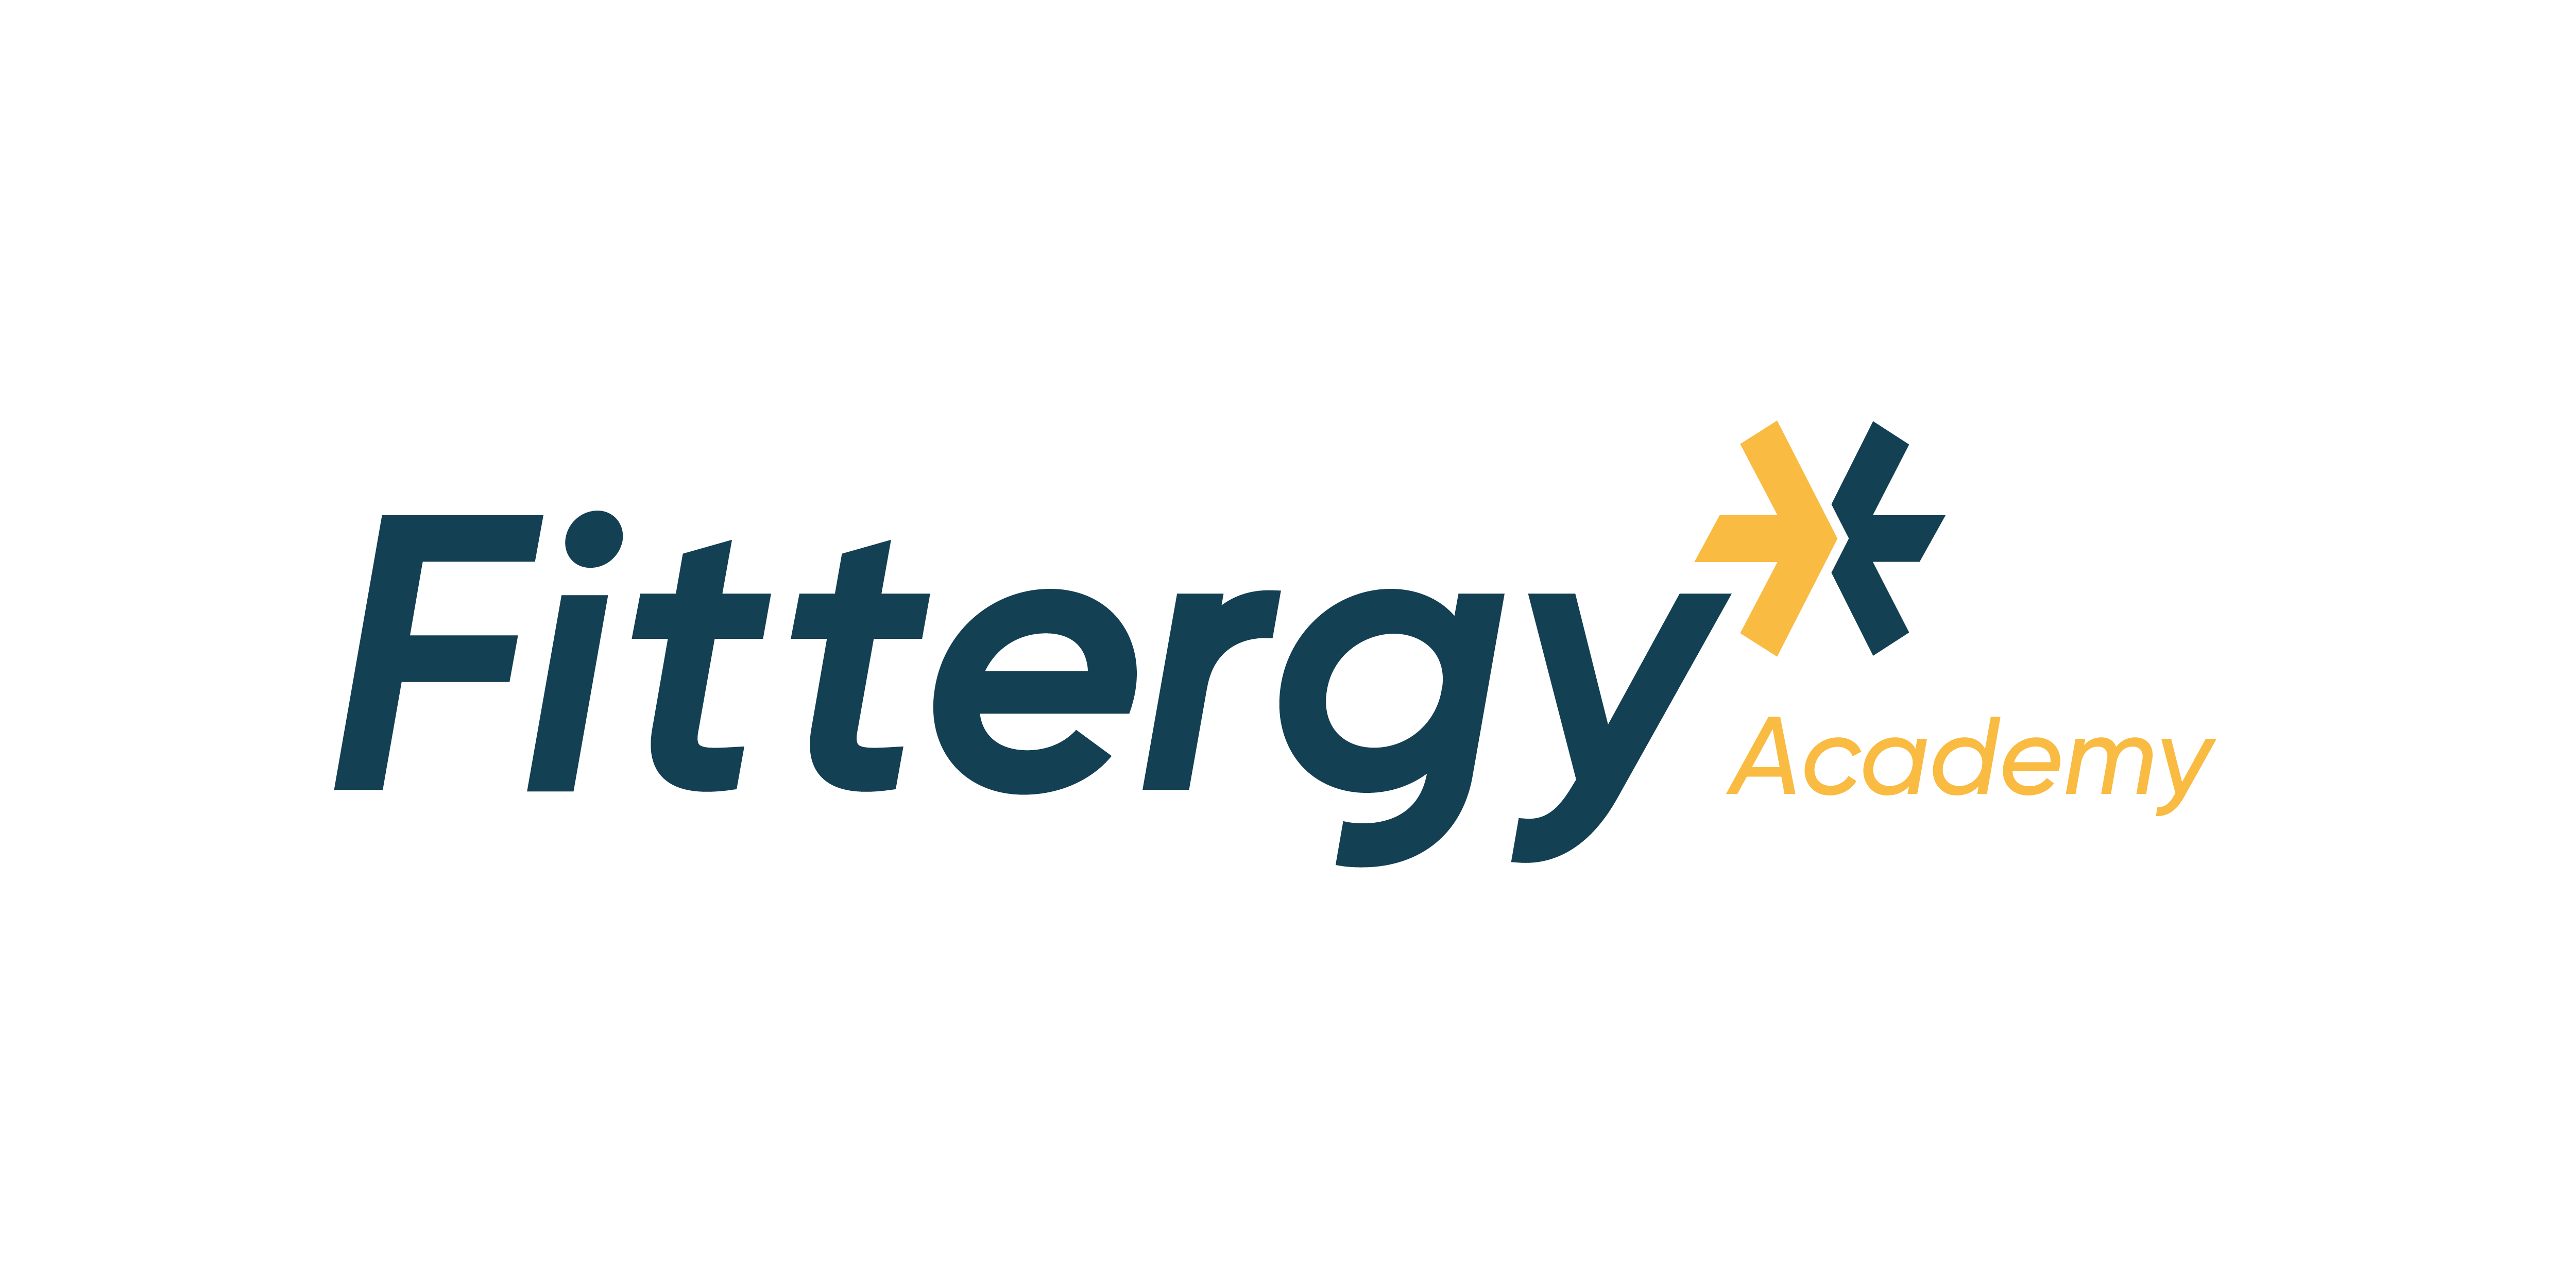 Fittergy Academy logo